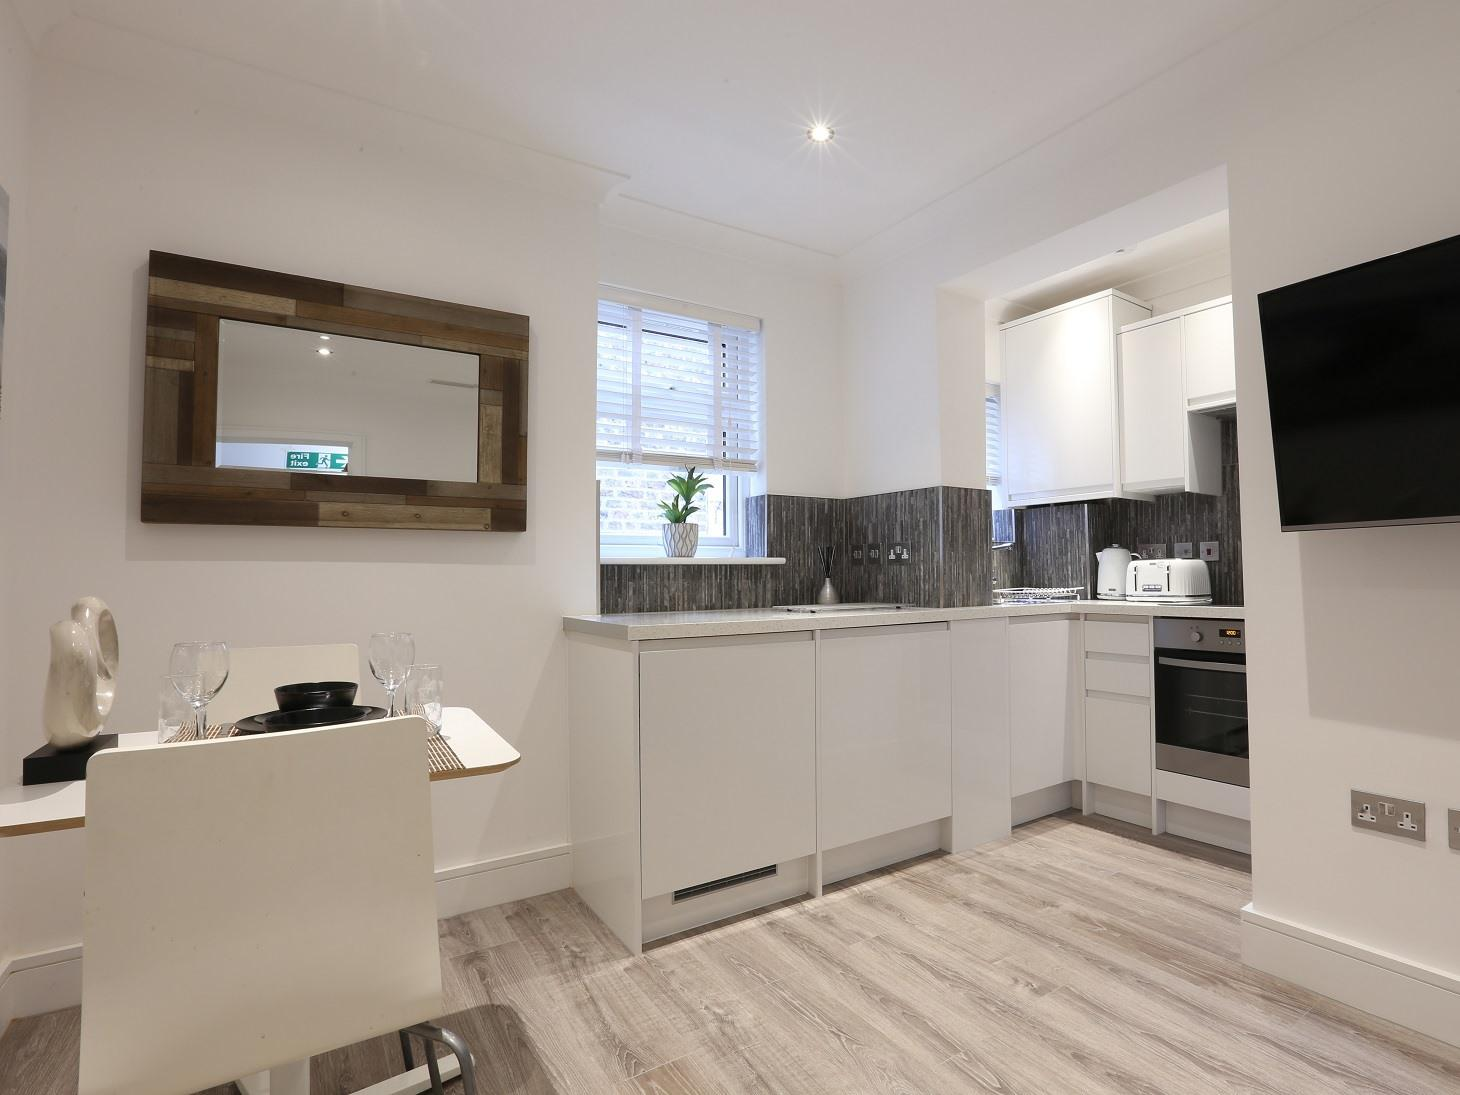 Apartment-Private Bathroom-One Bedroom Apartment - Base Rate